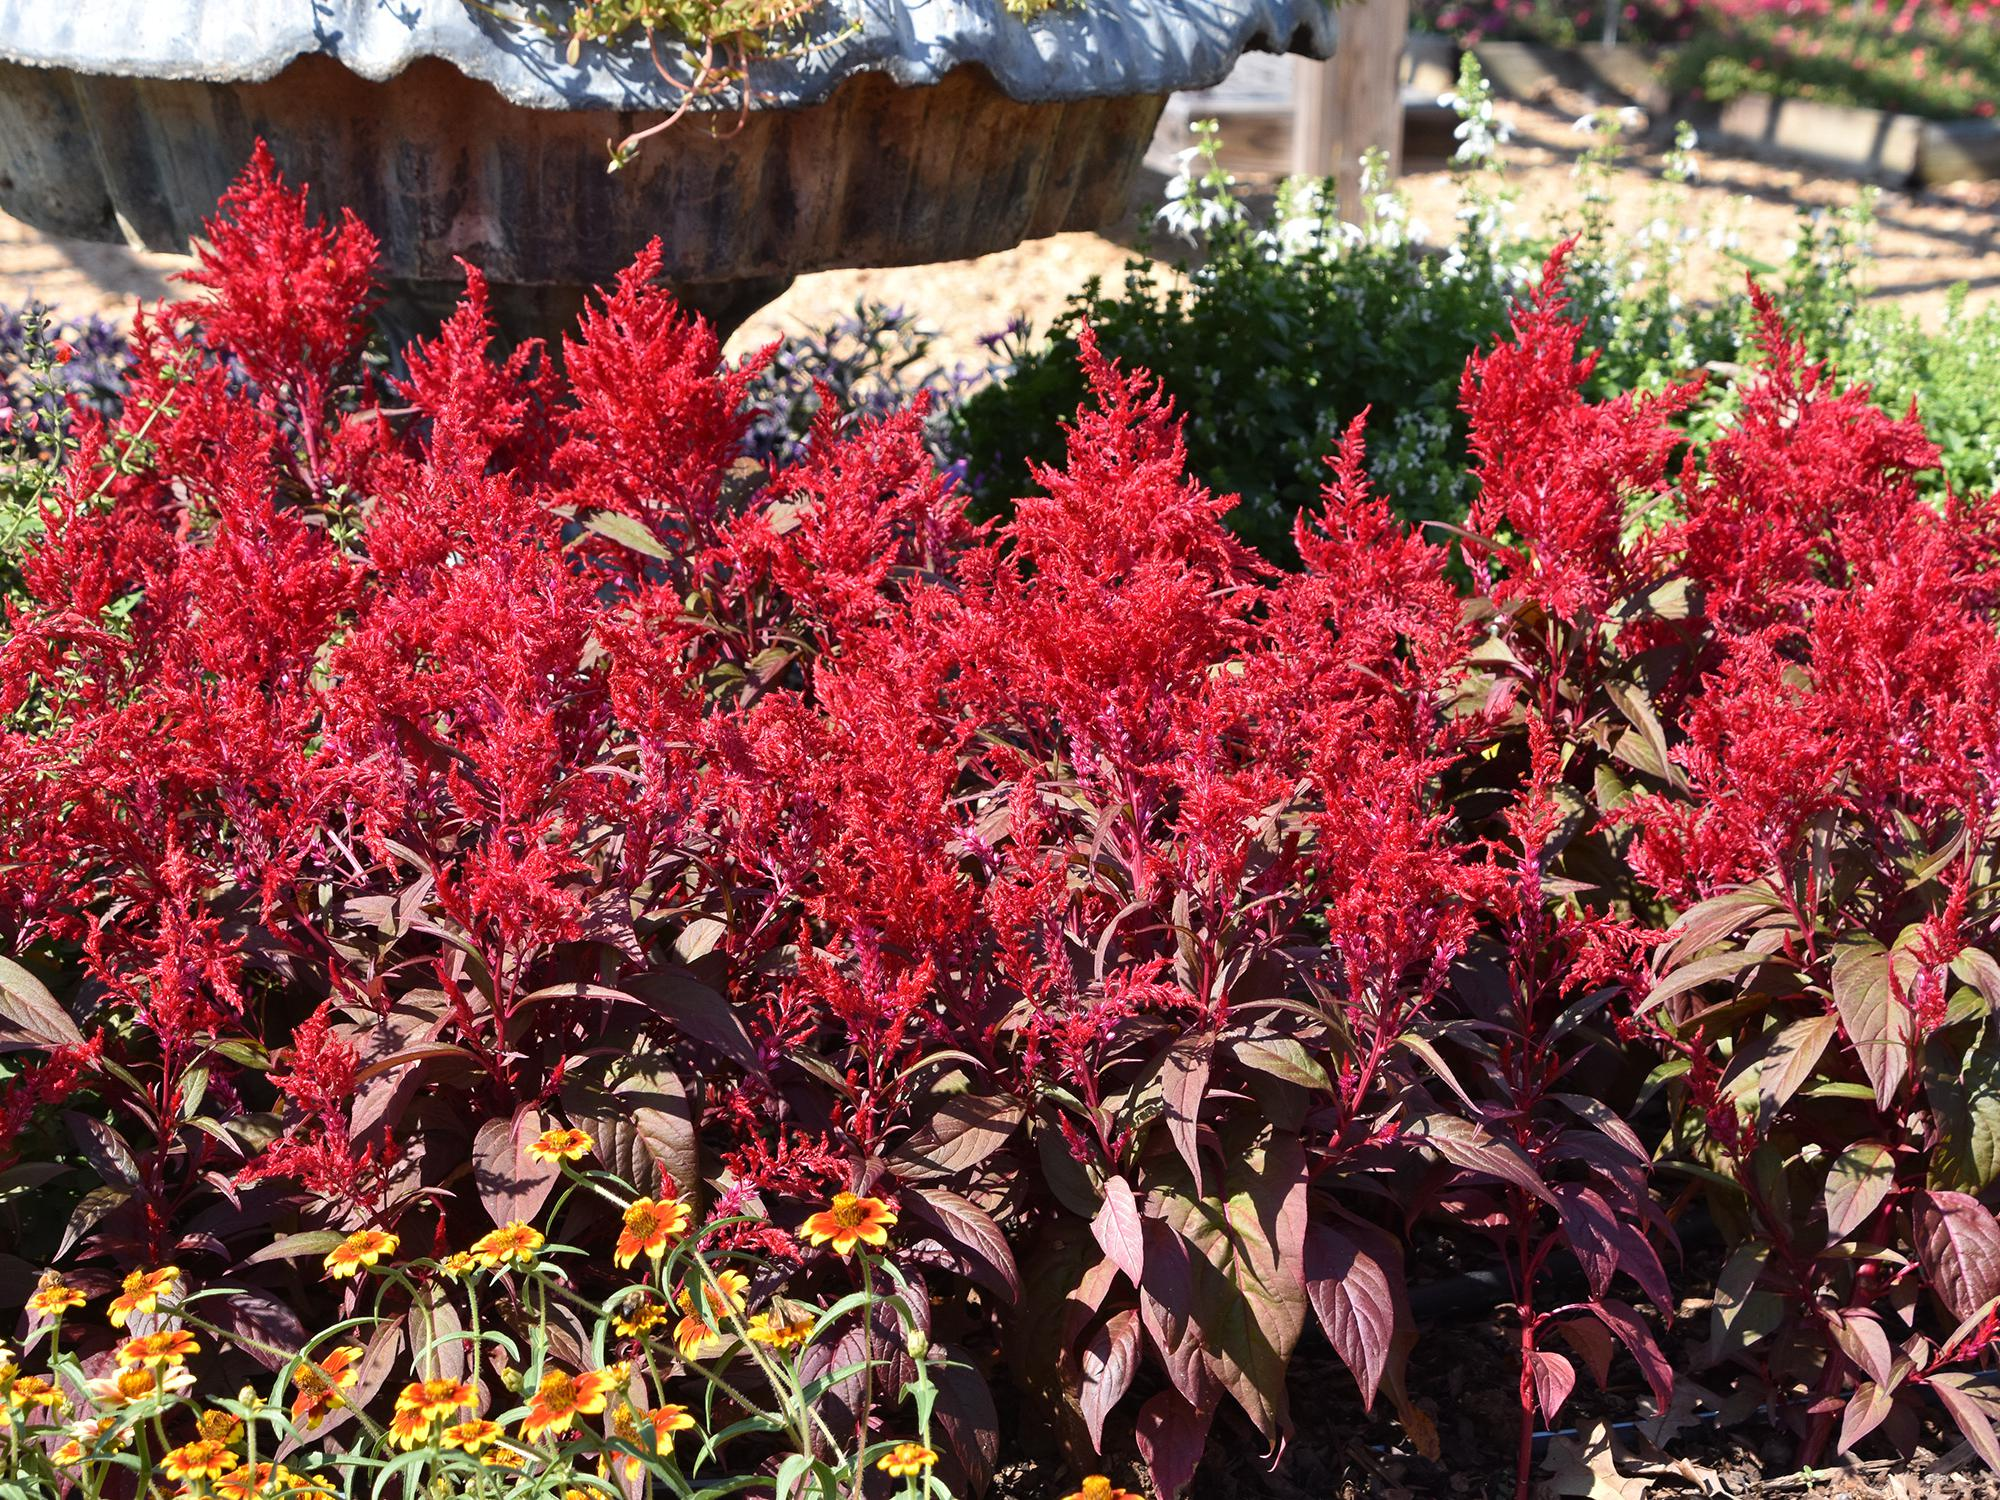 Dragon's Breath celosias grow equally well in the landscape bed or in a patio container. Its unique red-green foliage is topped with blazing red, feathery flowers. (Photo by MSU Extension/Gary Bachman)